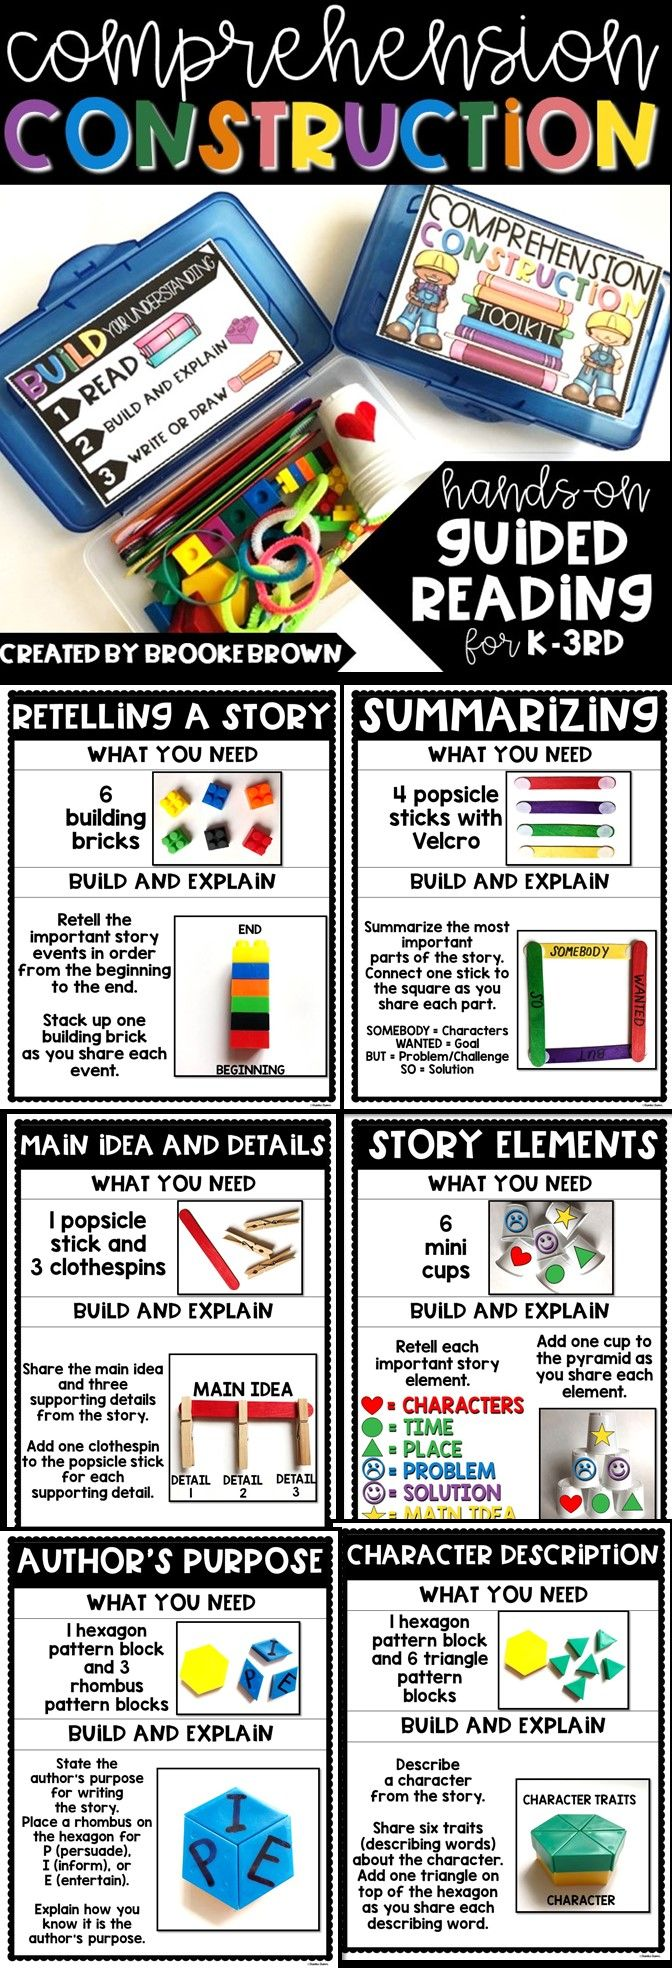 Hands-on Guided reading for Kindergarten, first grade, and second grade   comprehension construction